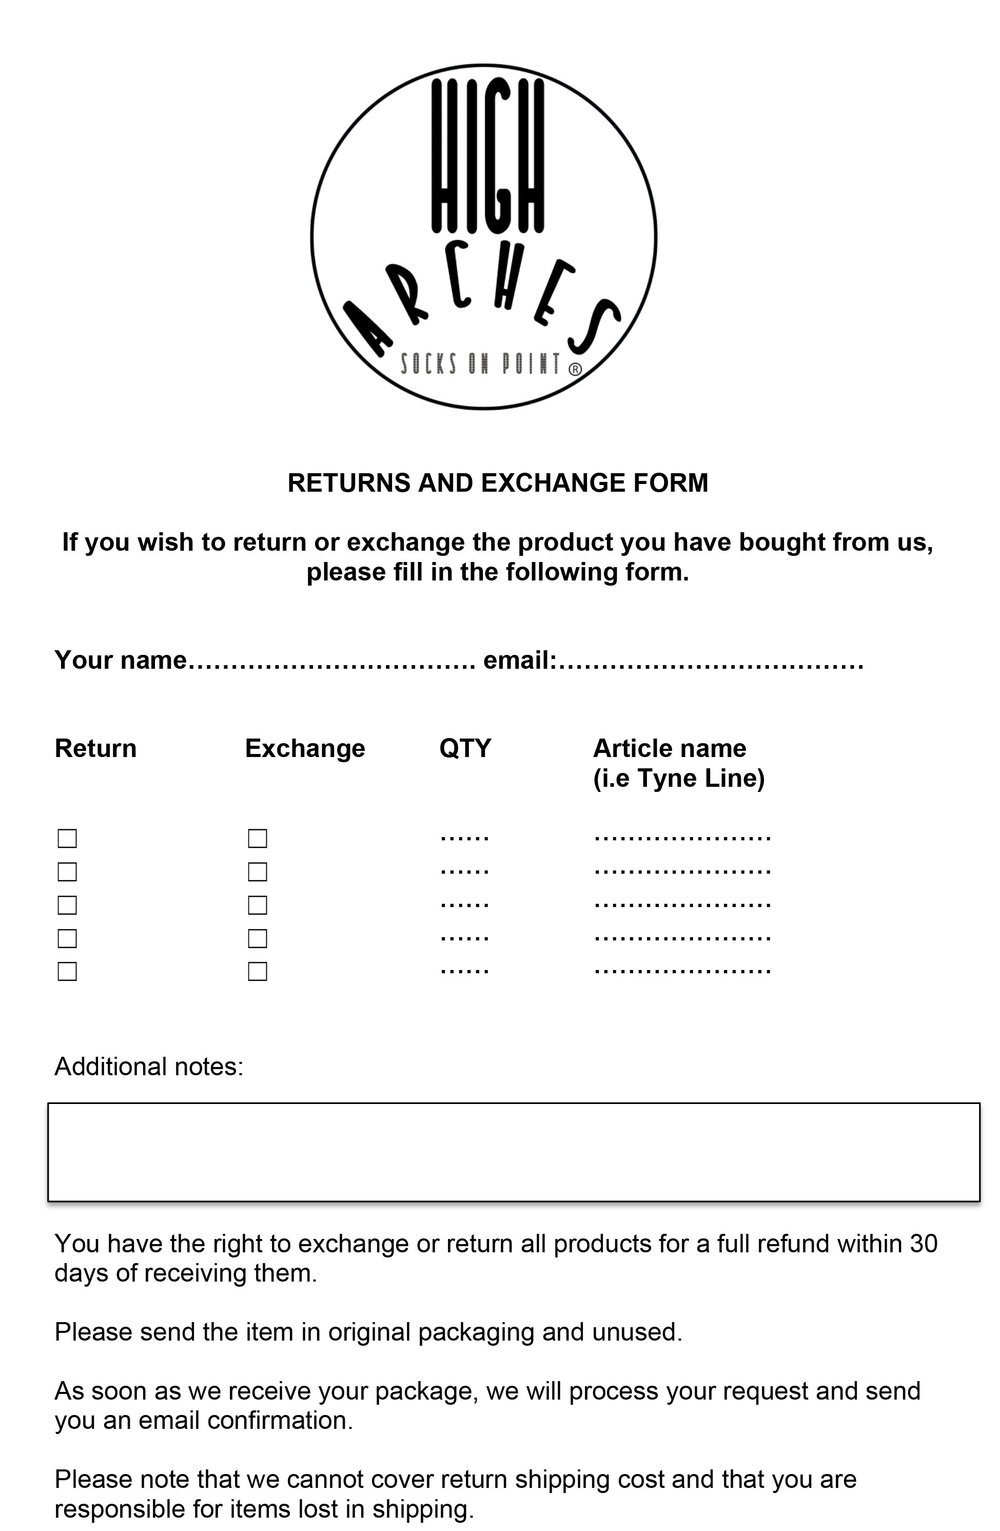 RETURNS AND EXCHANGE FORM.jpg